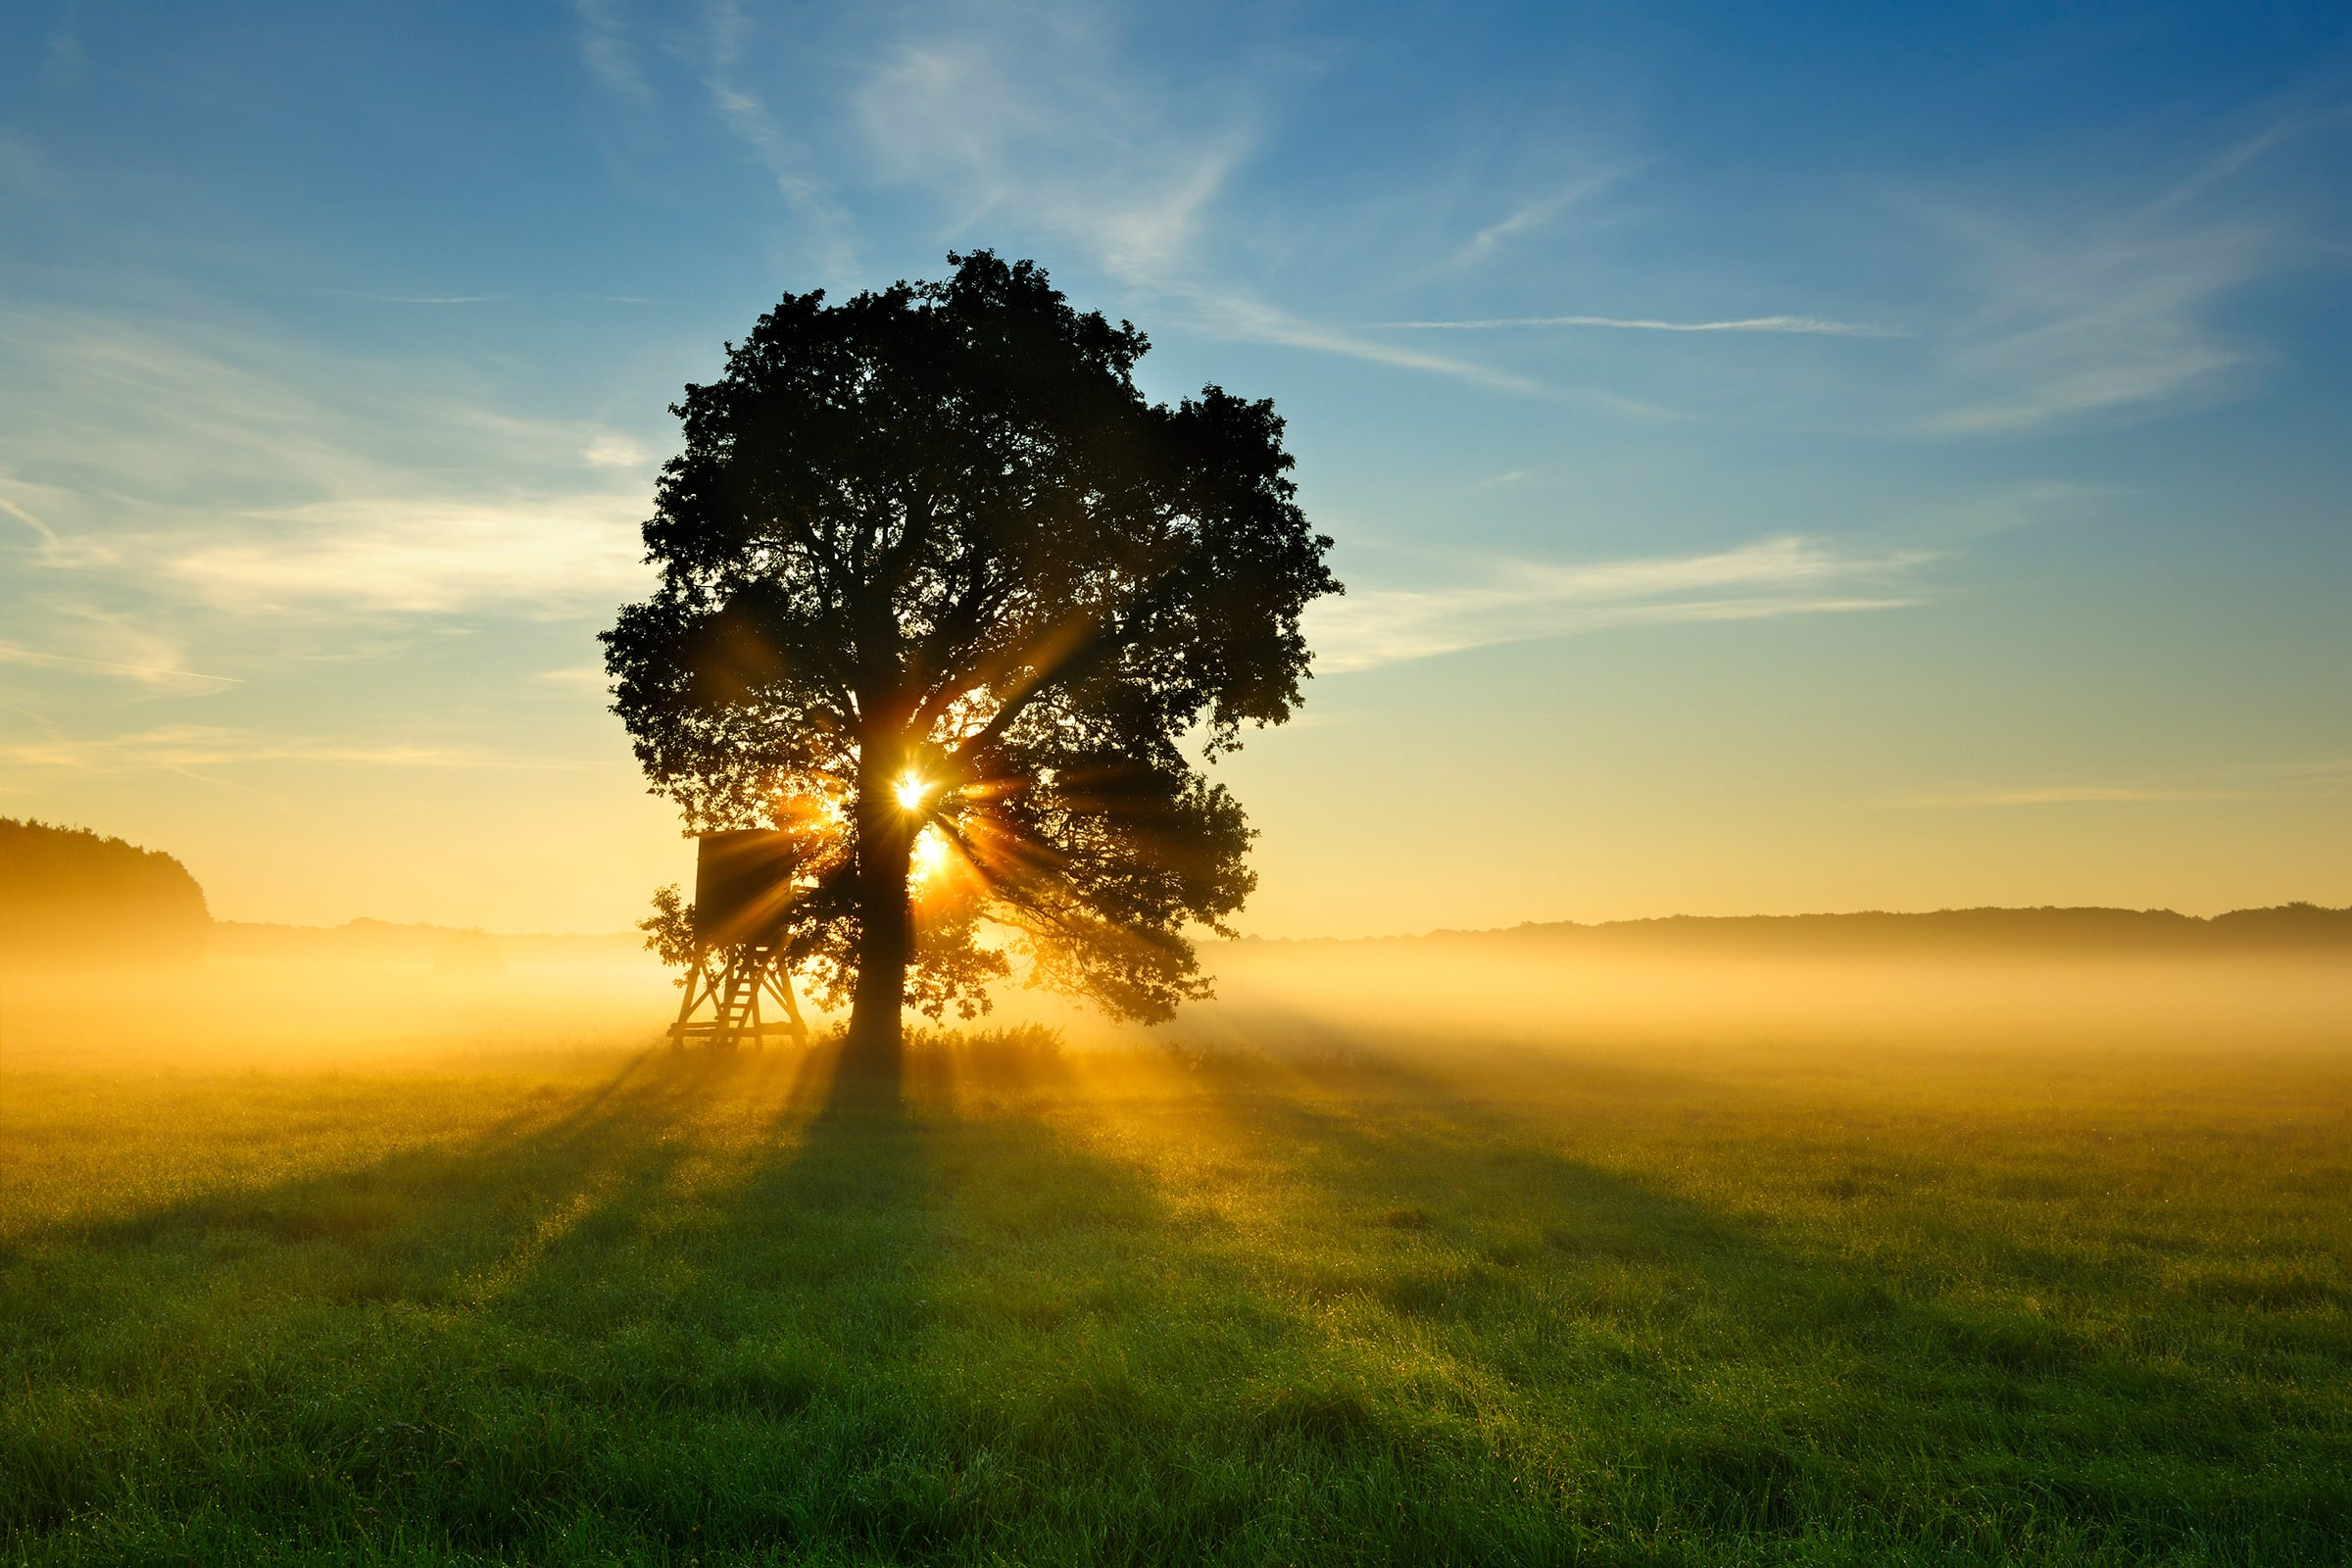 Oak Tree in Meadow at Sunrise, Sunbeams breaking through Morning